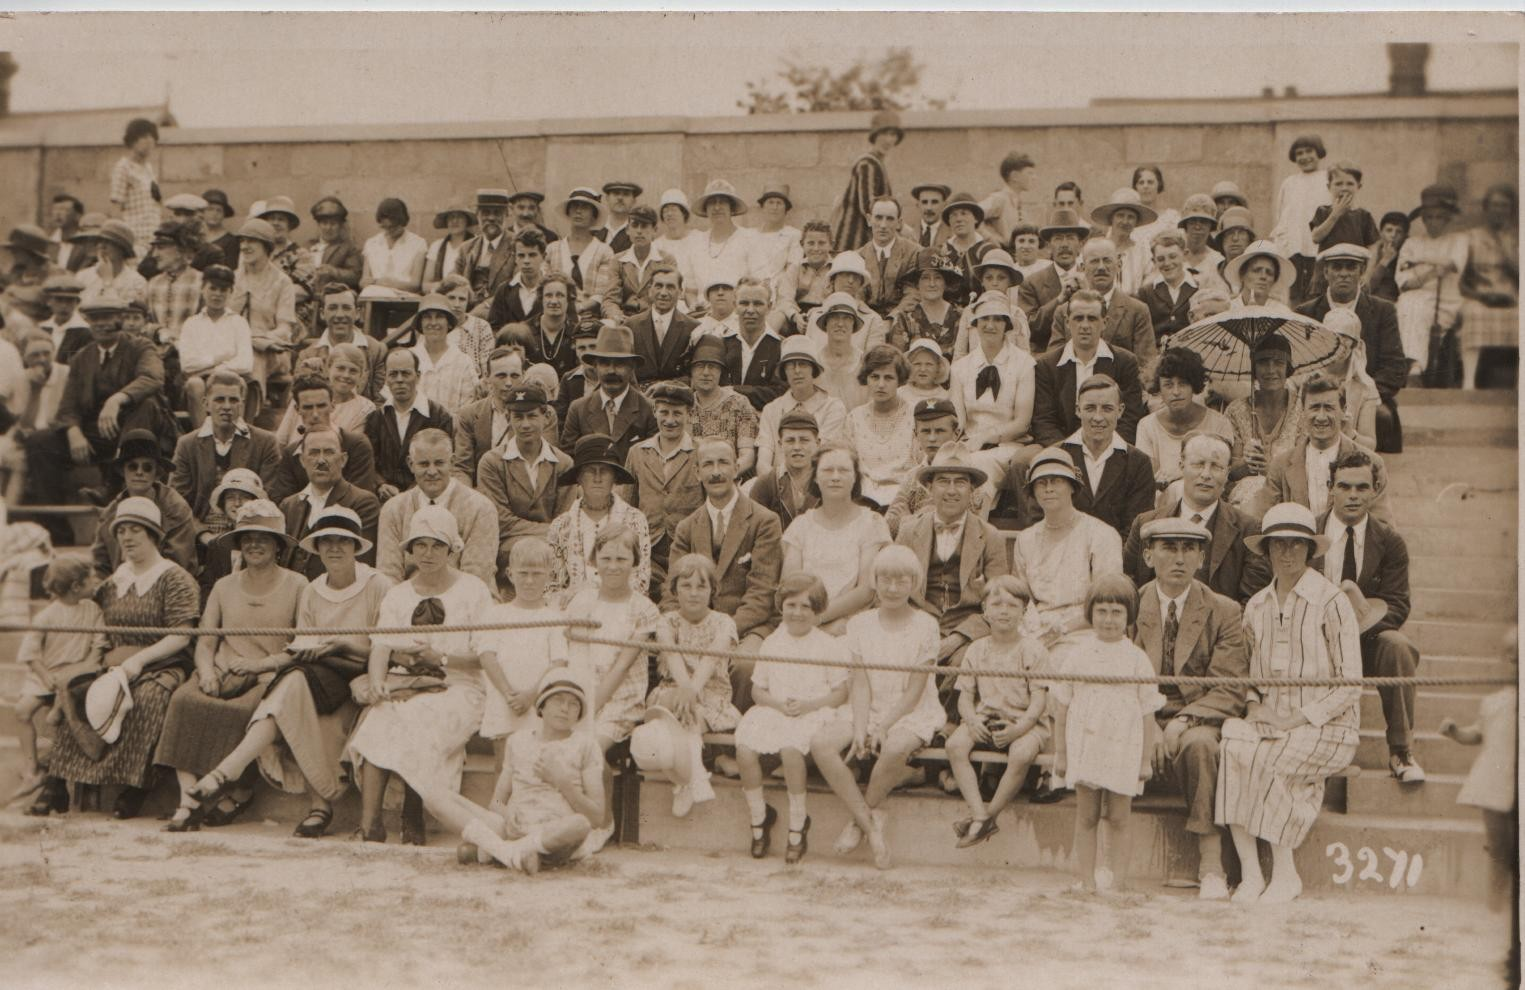 Clacton circa 1925: KML (mid second row large black hat), JGL, Anna; in front, David, Dorothy, Joan